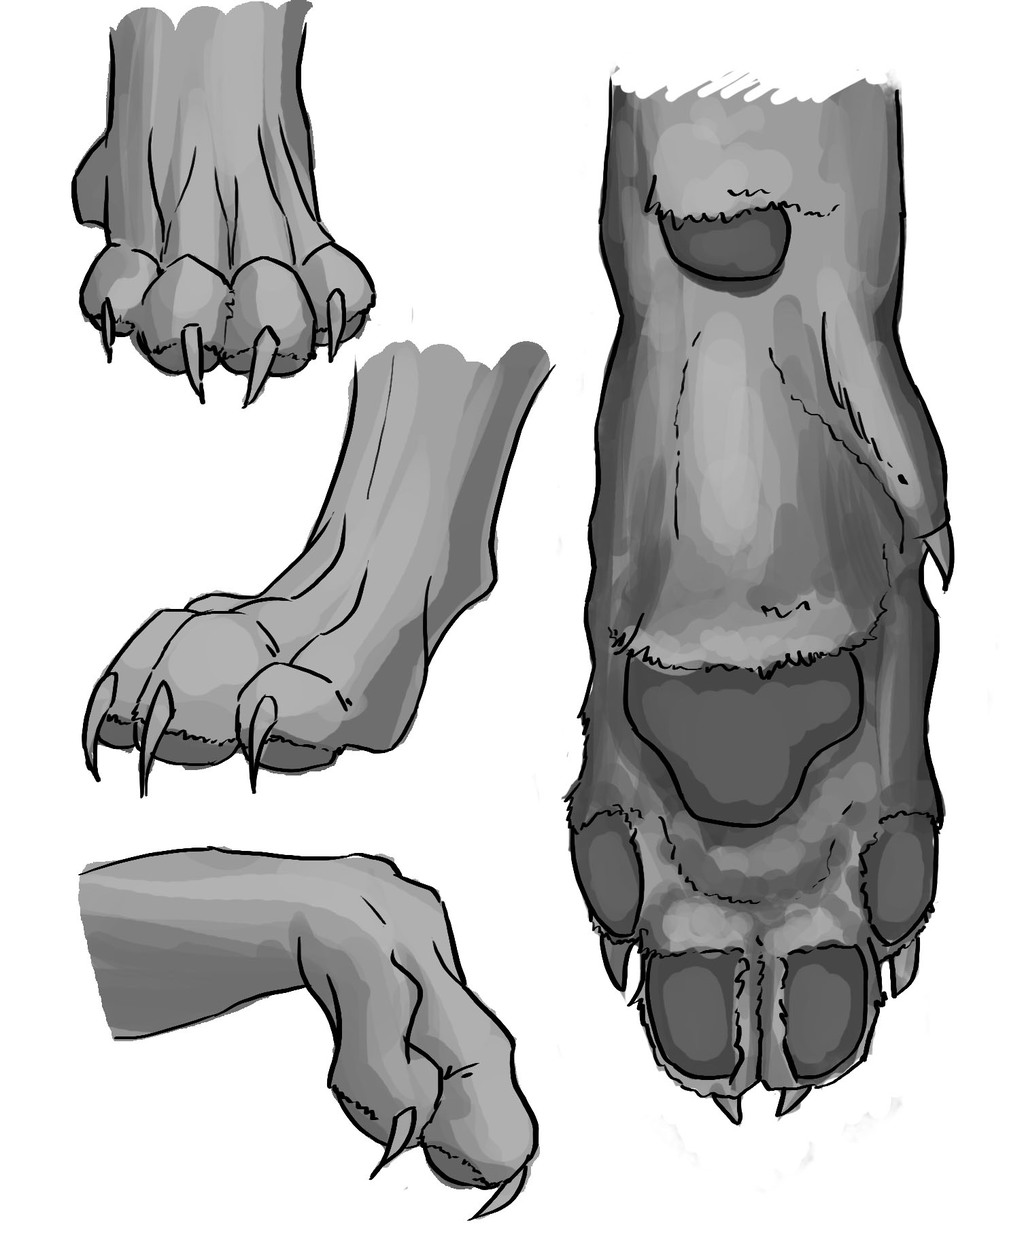 Most recent image: paws study/reference